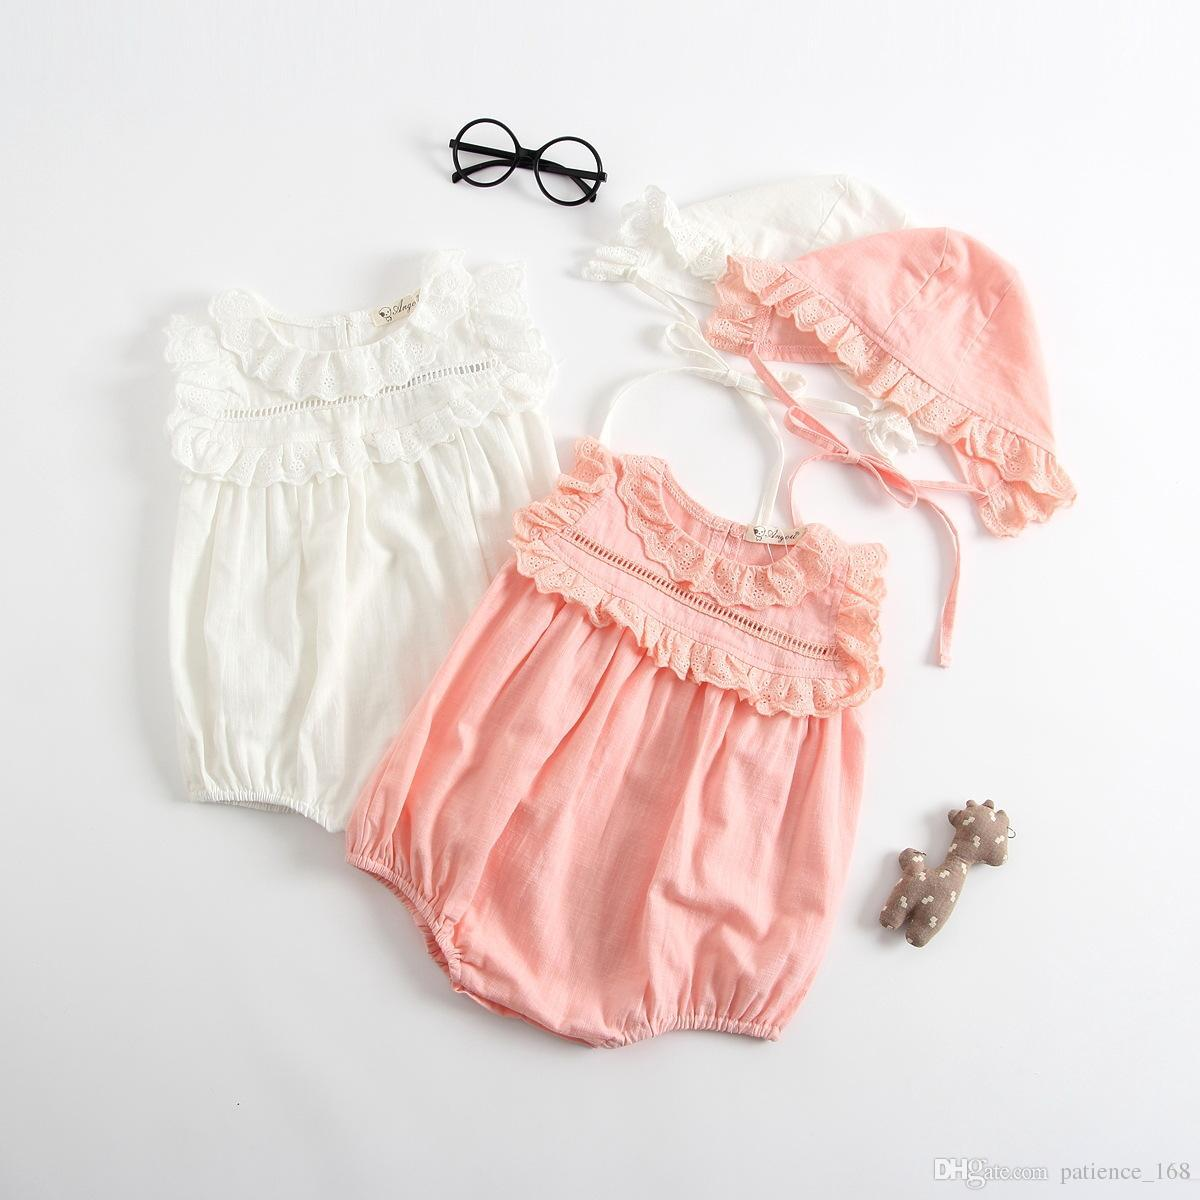 6b501afb7 2018 INS New Style Baby Kids Solid Color Lace Collar Romper High ...